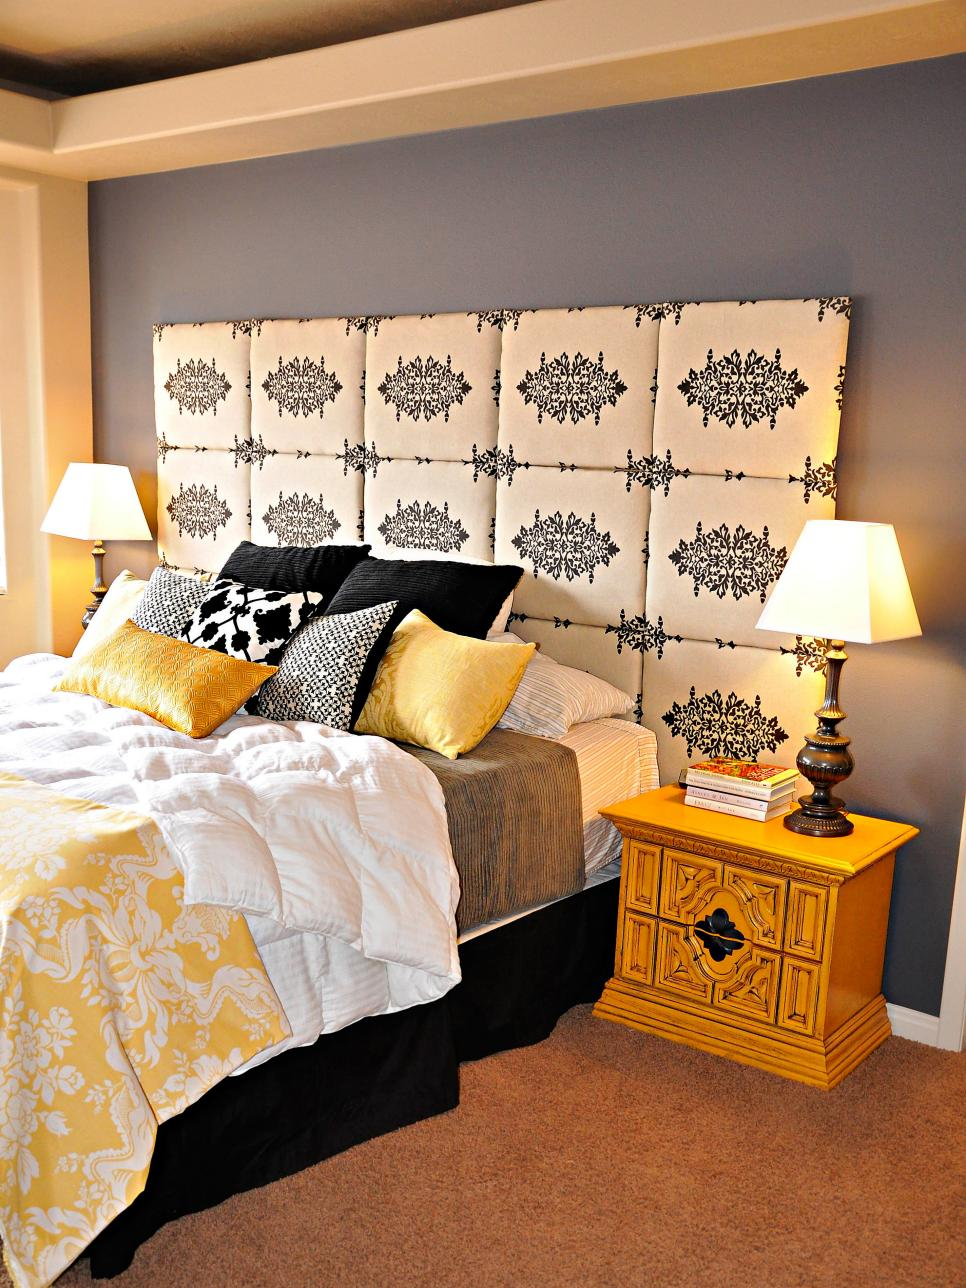 20 High Impact Headboards Hgtv